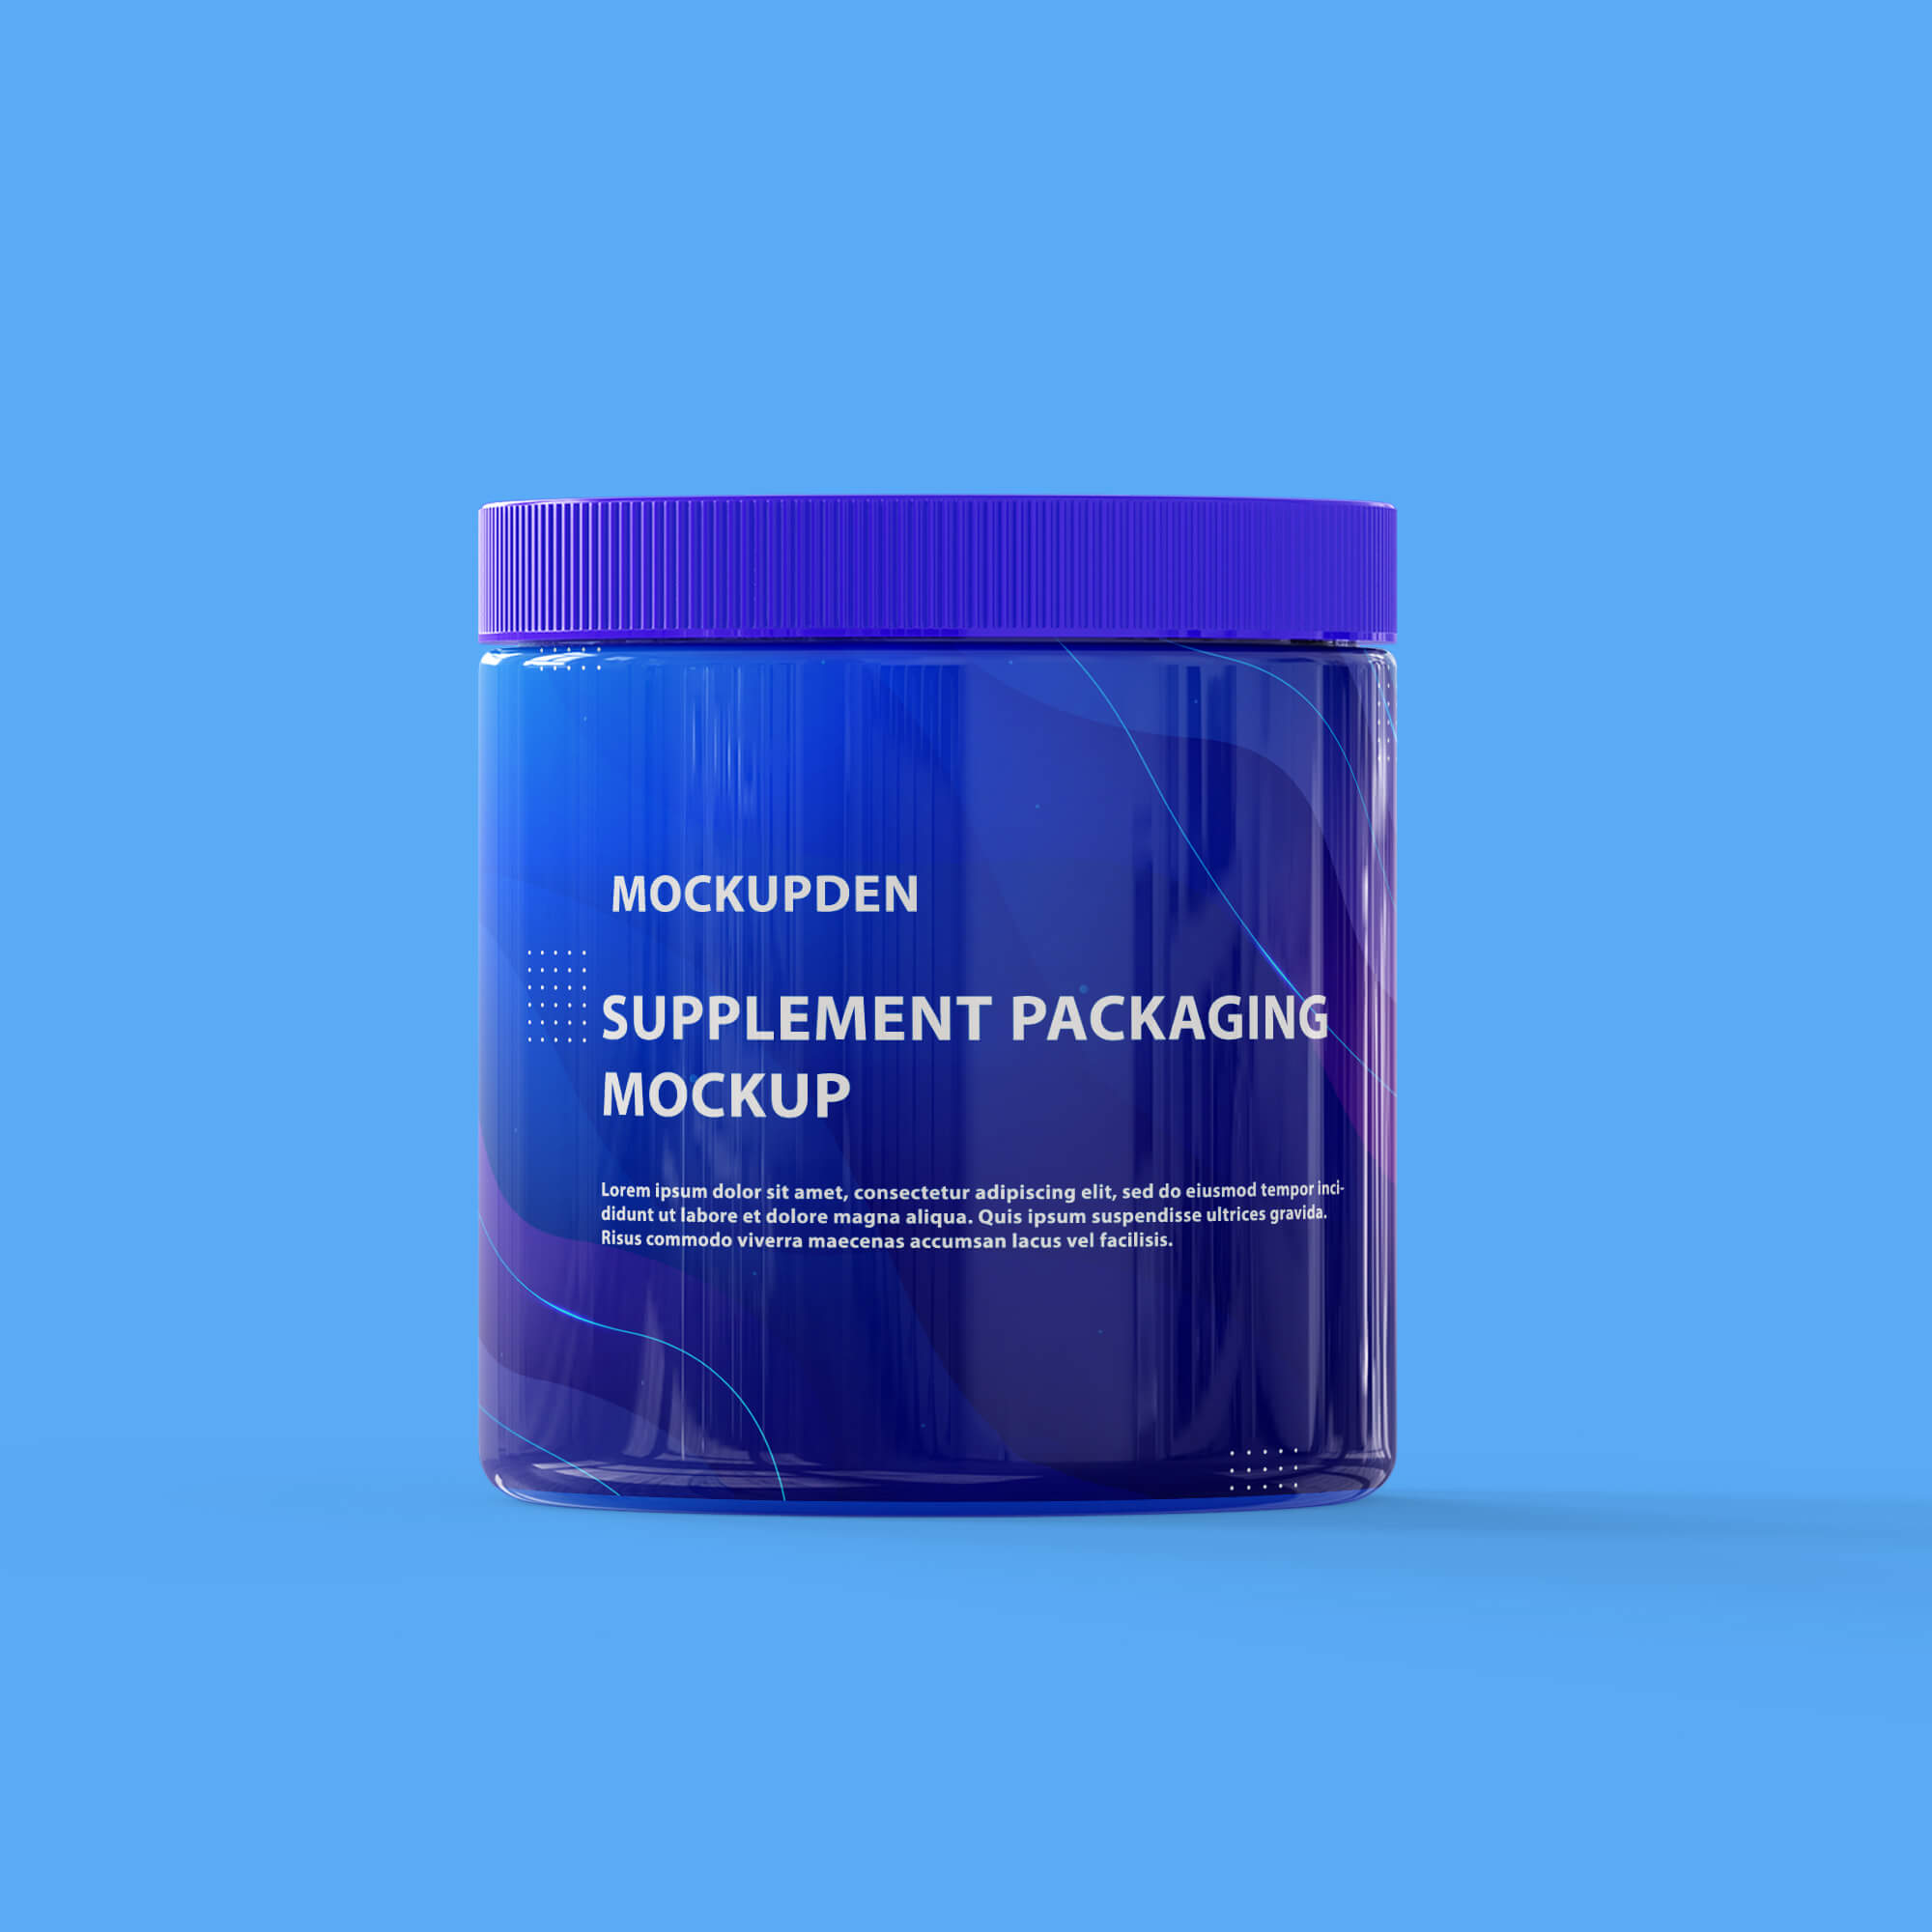 Design Free Supplement Packaging Mockup PSD Template